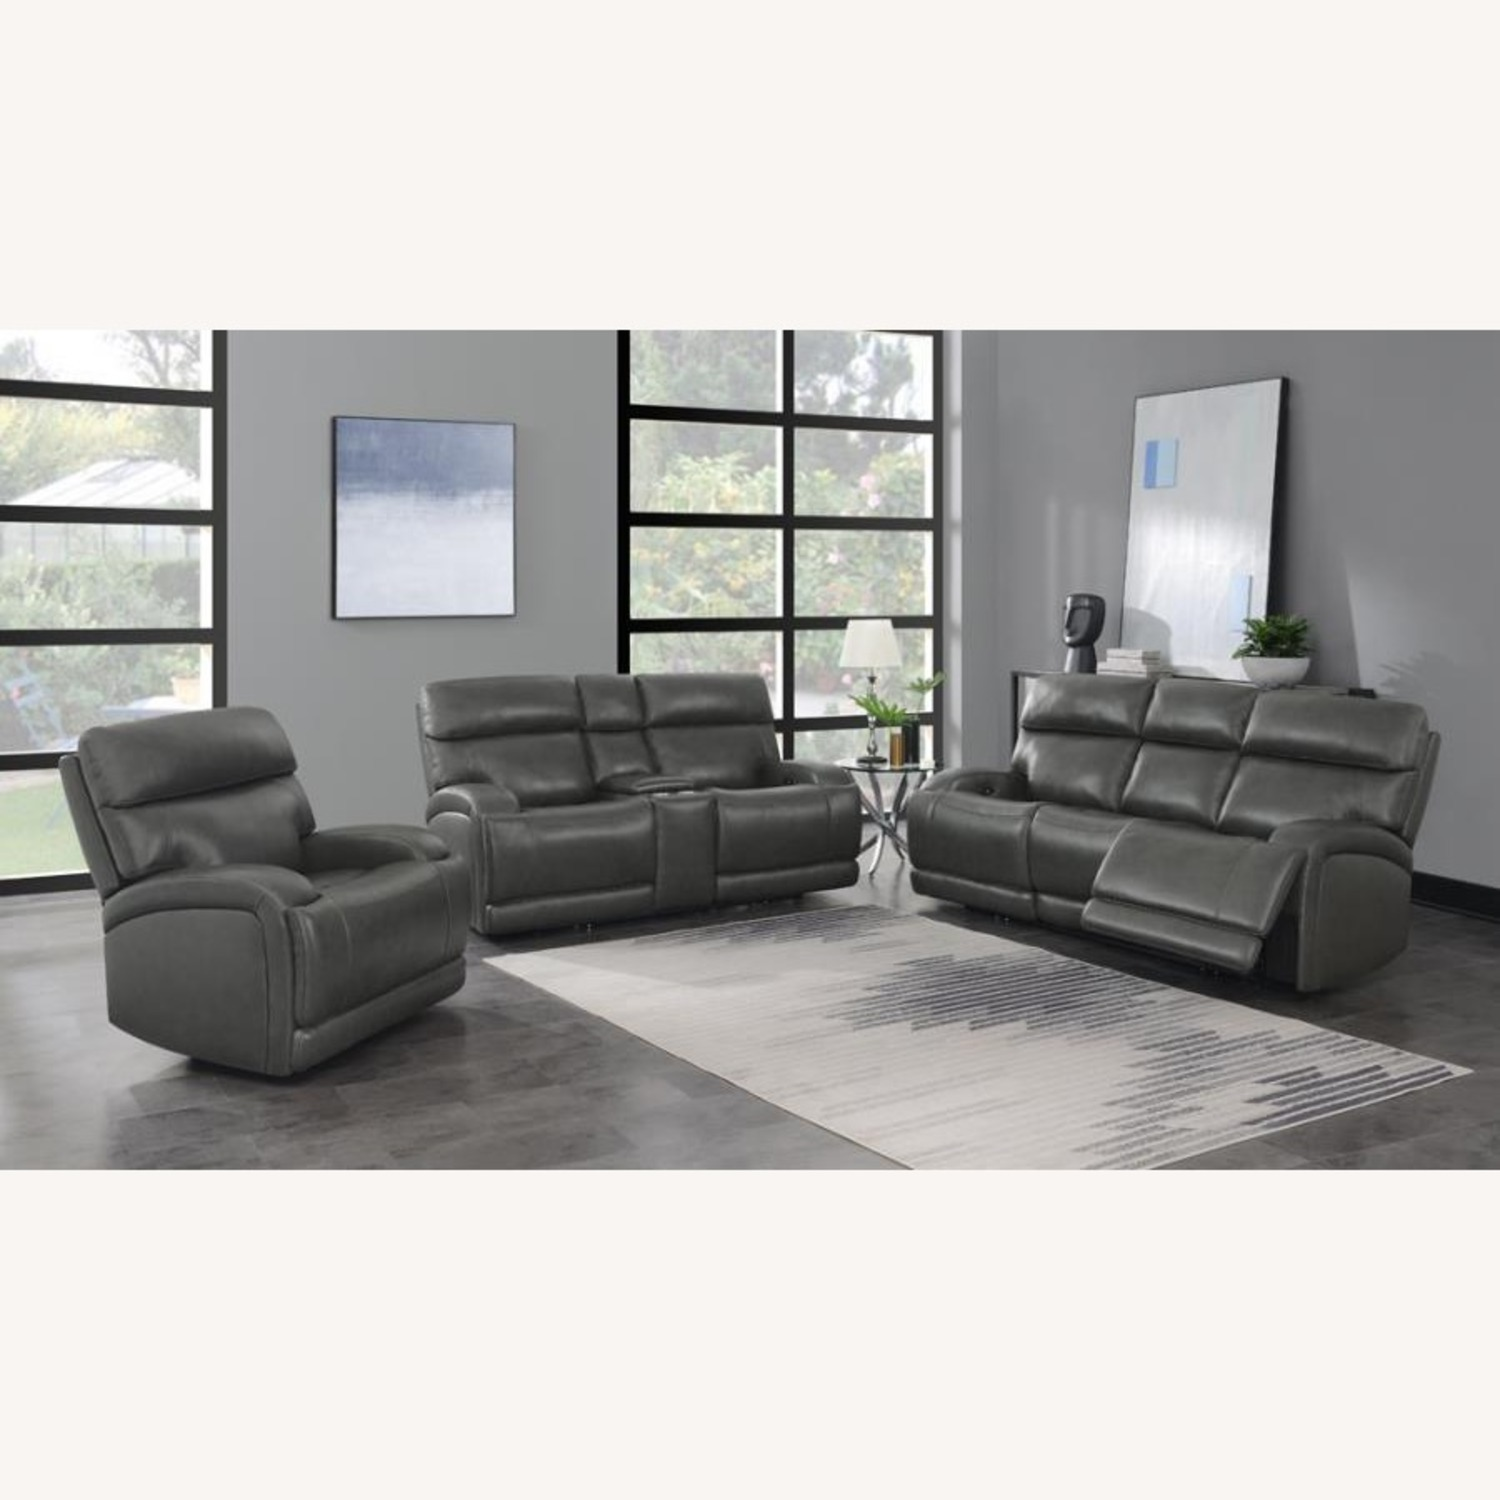 Power Loveseat W/ Console In Charcoal Leatherette - image-10